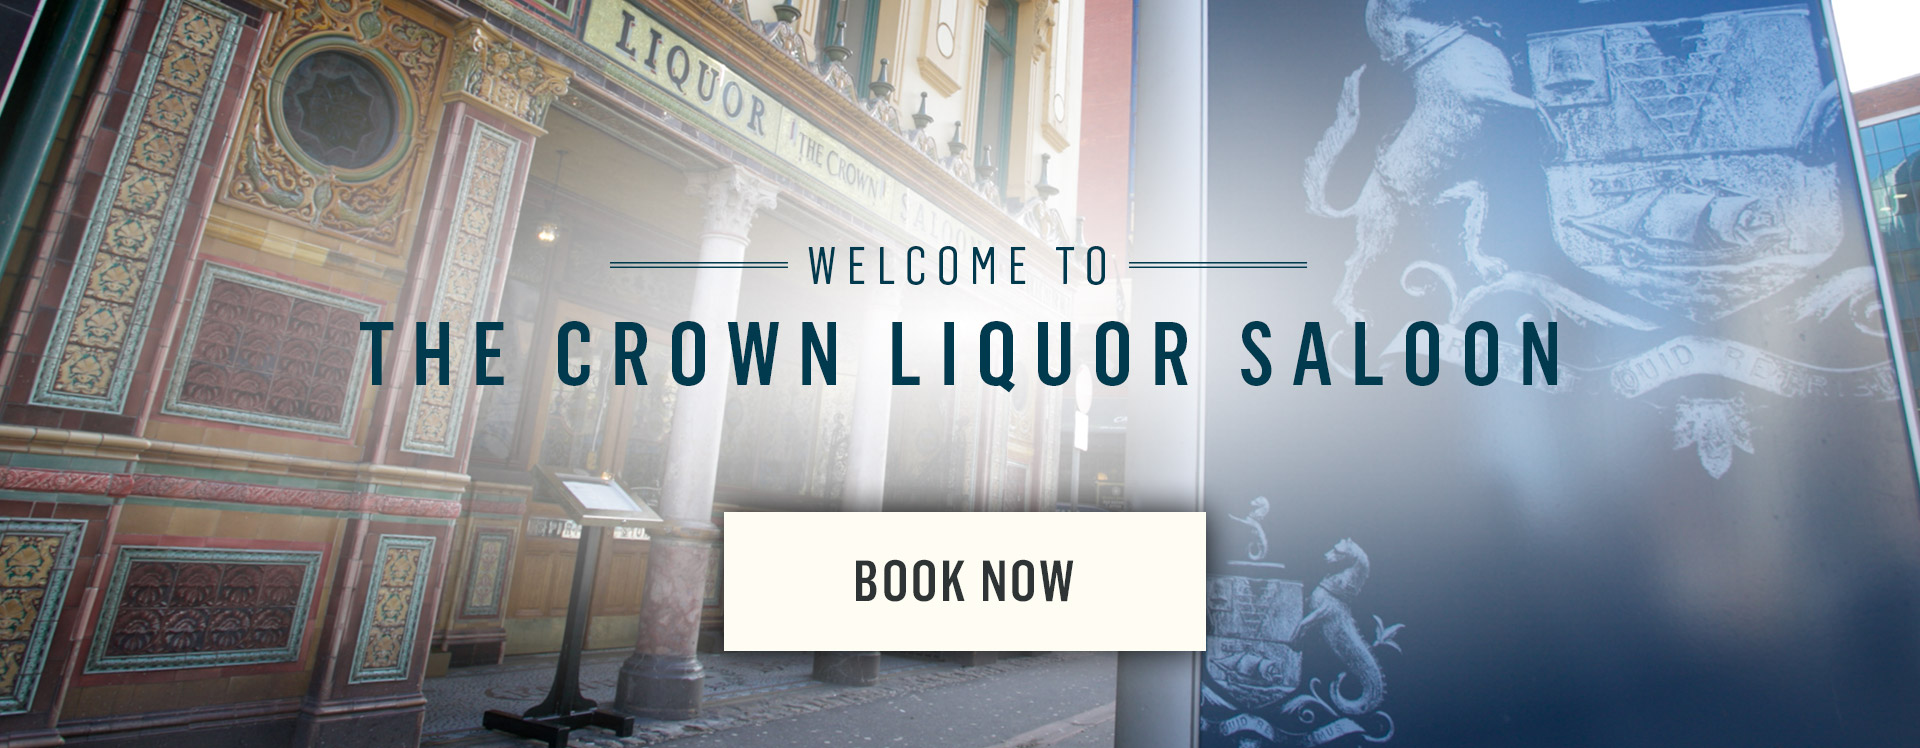 Welcome to The Crown Liquor Saloon - Book Now